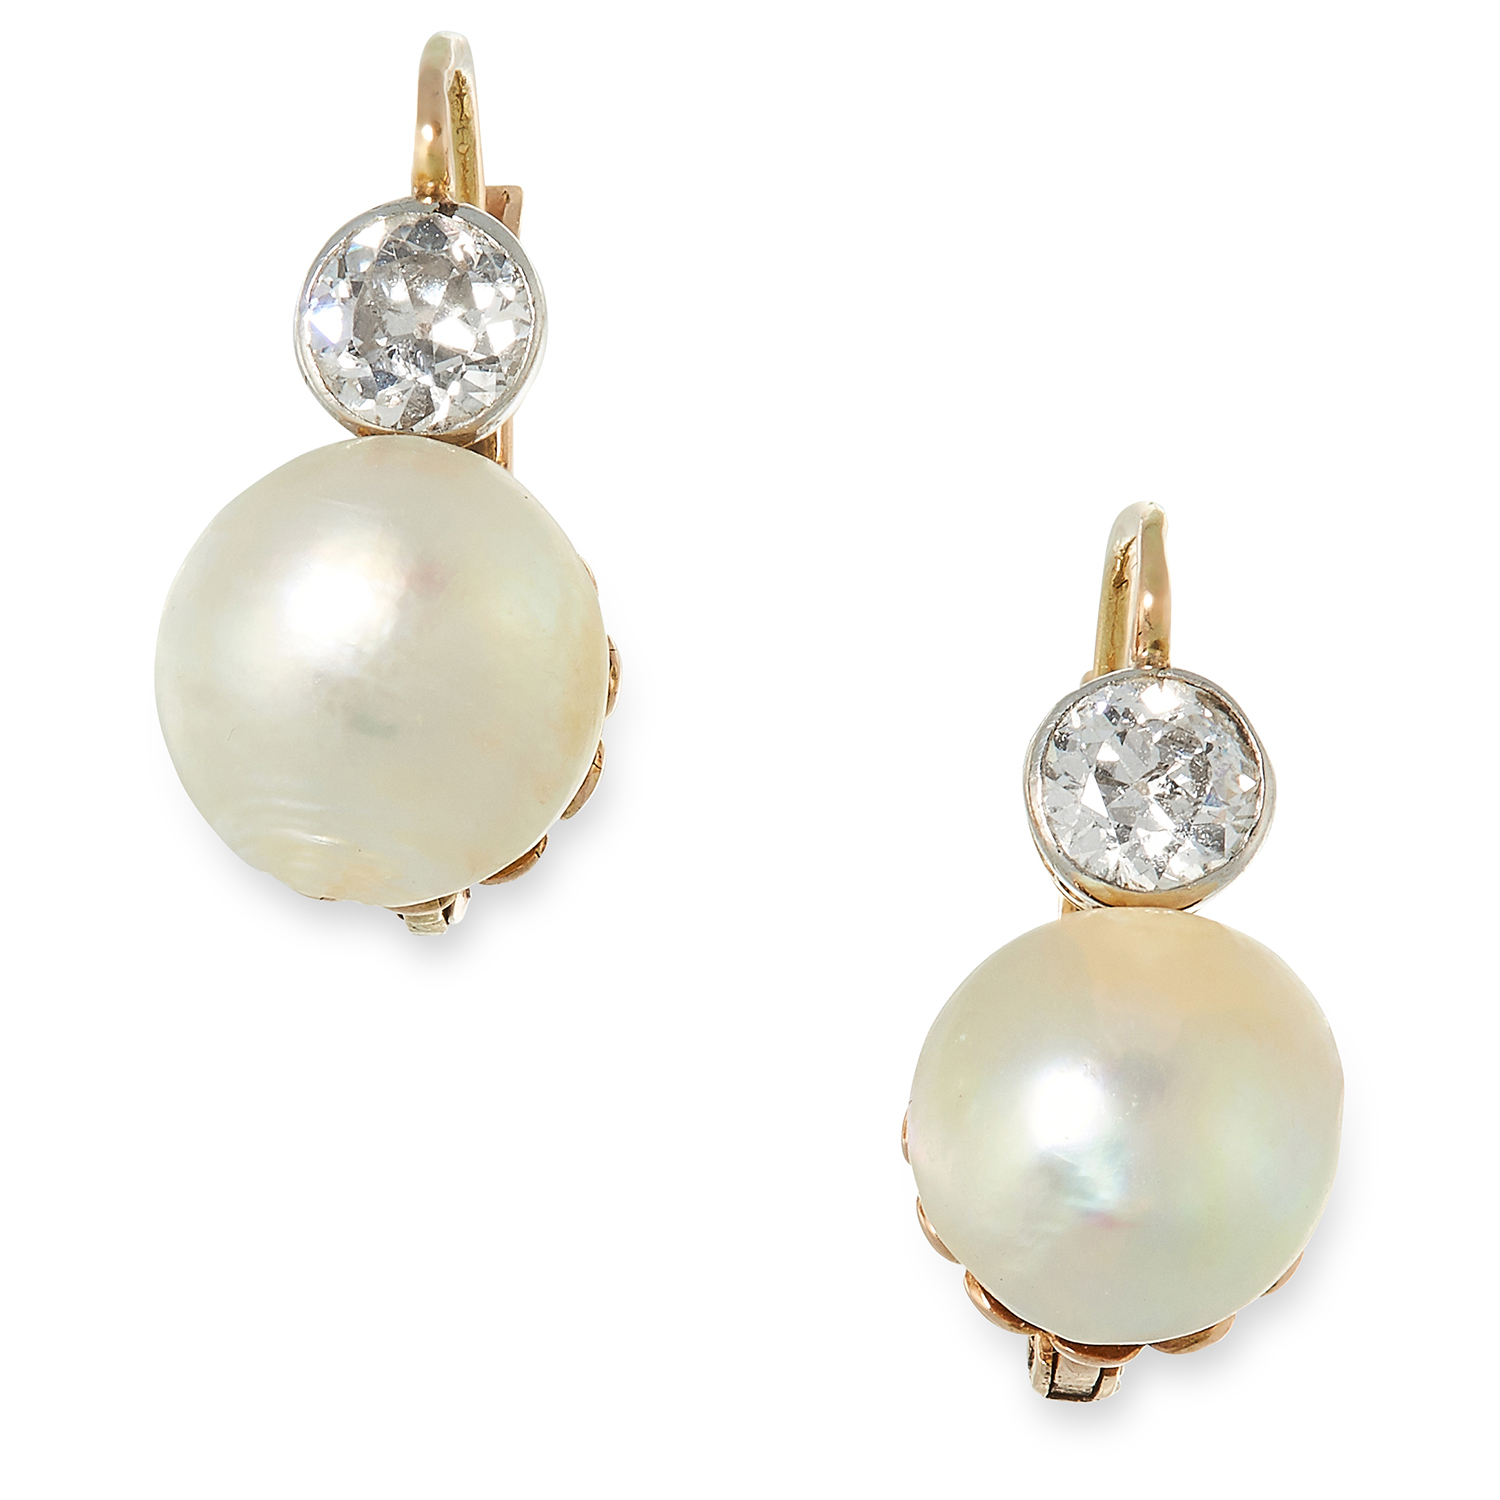 A PAIR OF ANTIQUE NATURAL PEARL AND DIAMOND EARRINGS each set with a natural pearl of 8.9mm and 8.